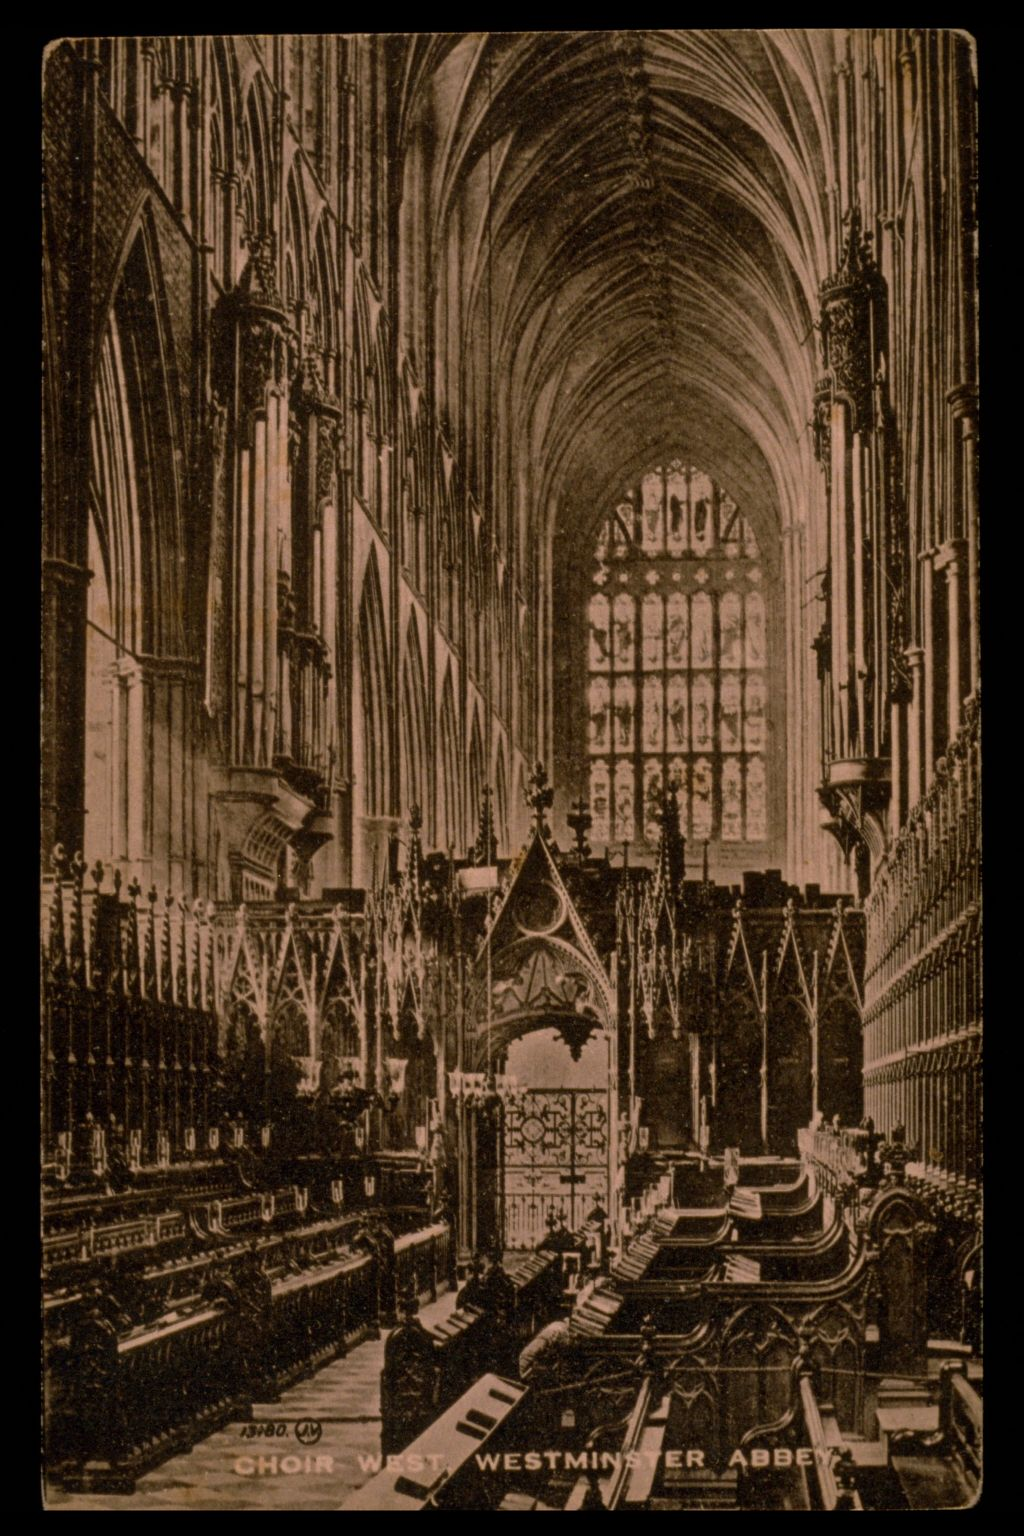 Choir West, Westminster Abbey.